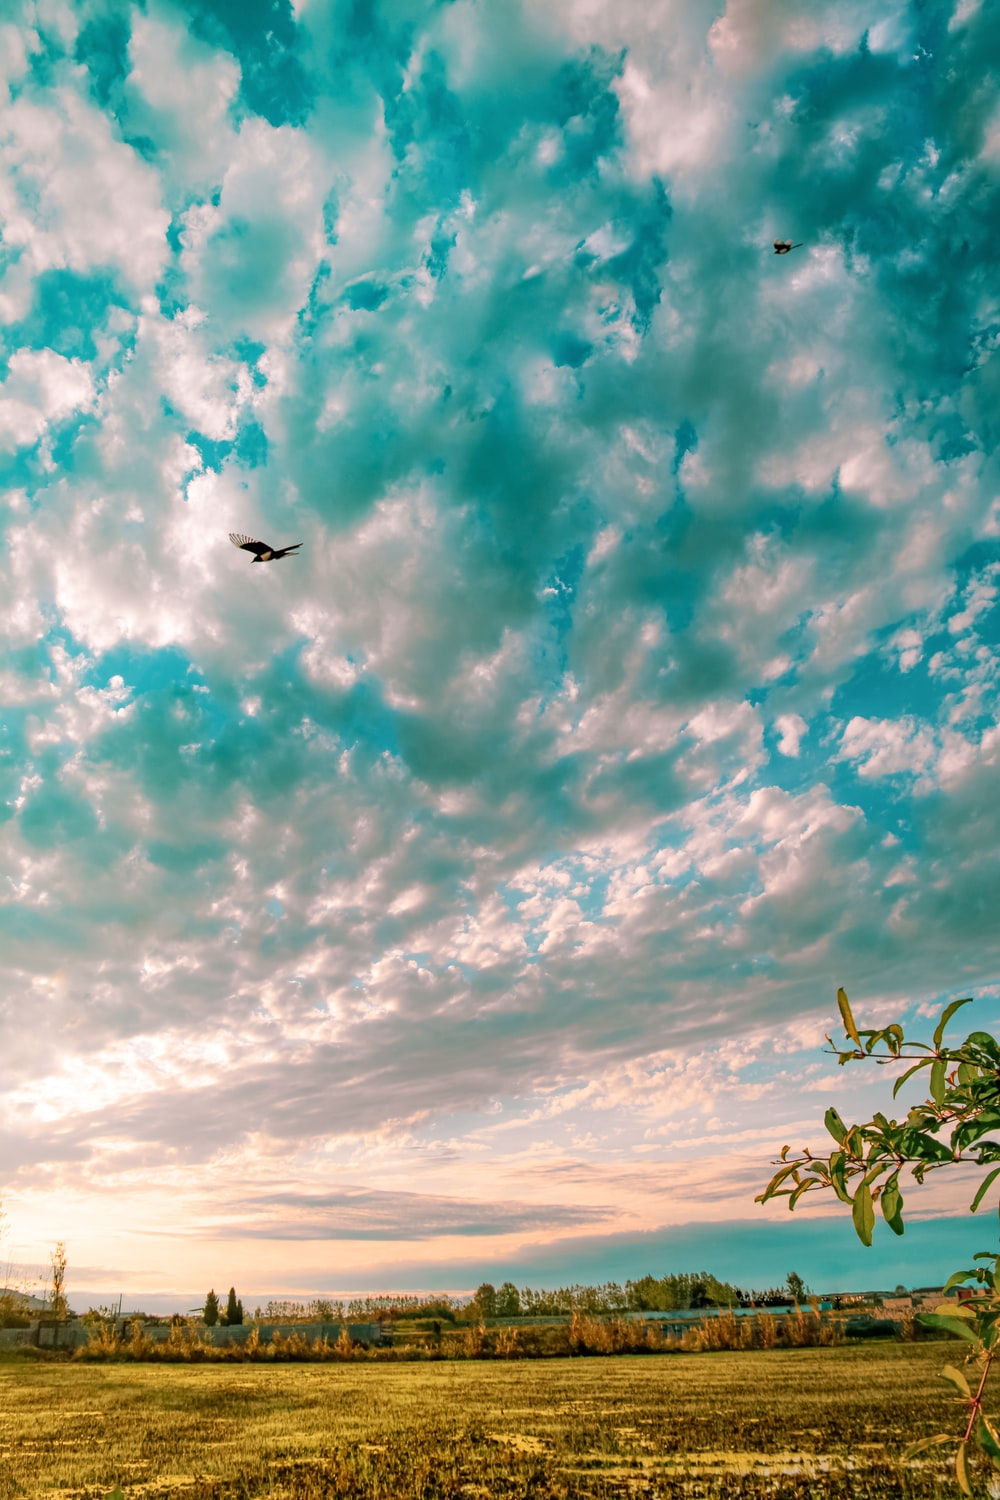 black bird flying over green plants under blue and white cloudy sky during daytime